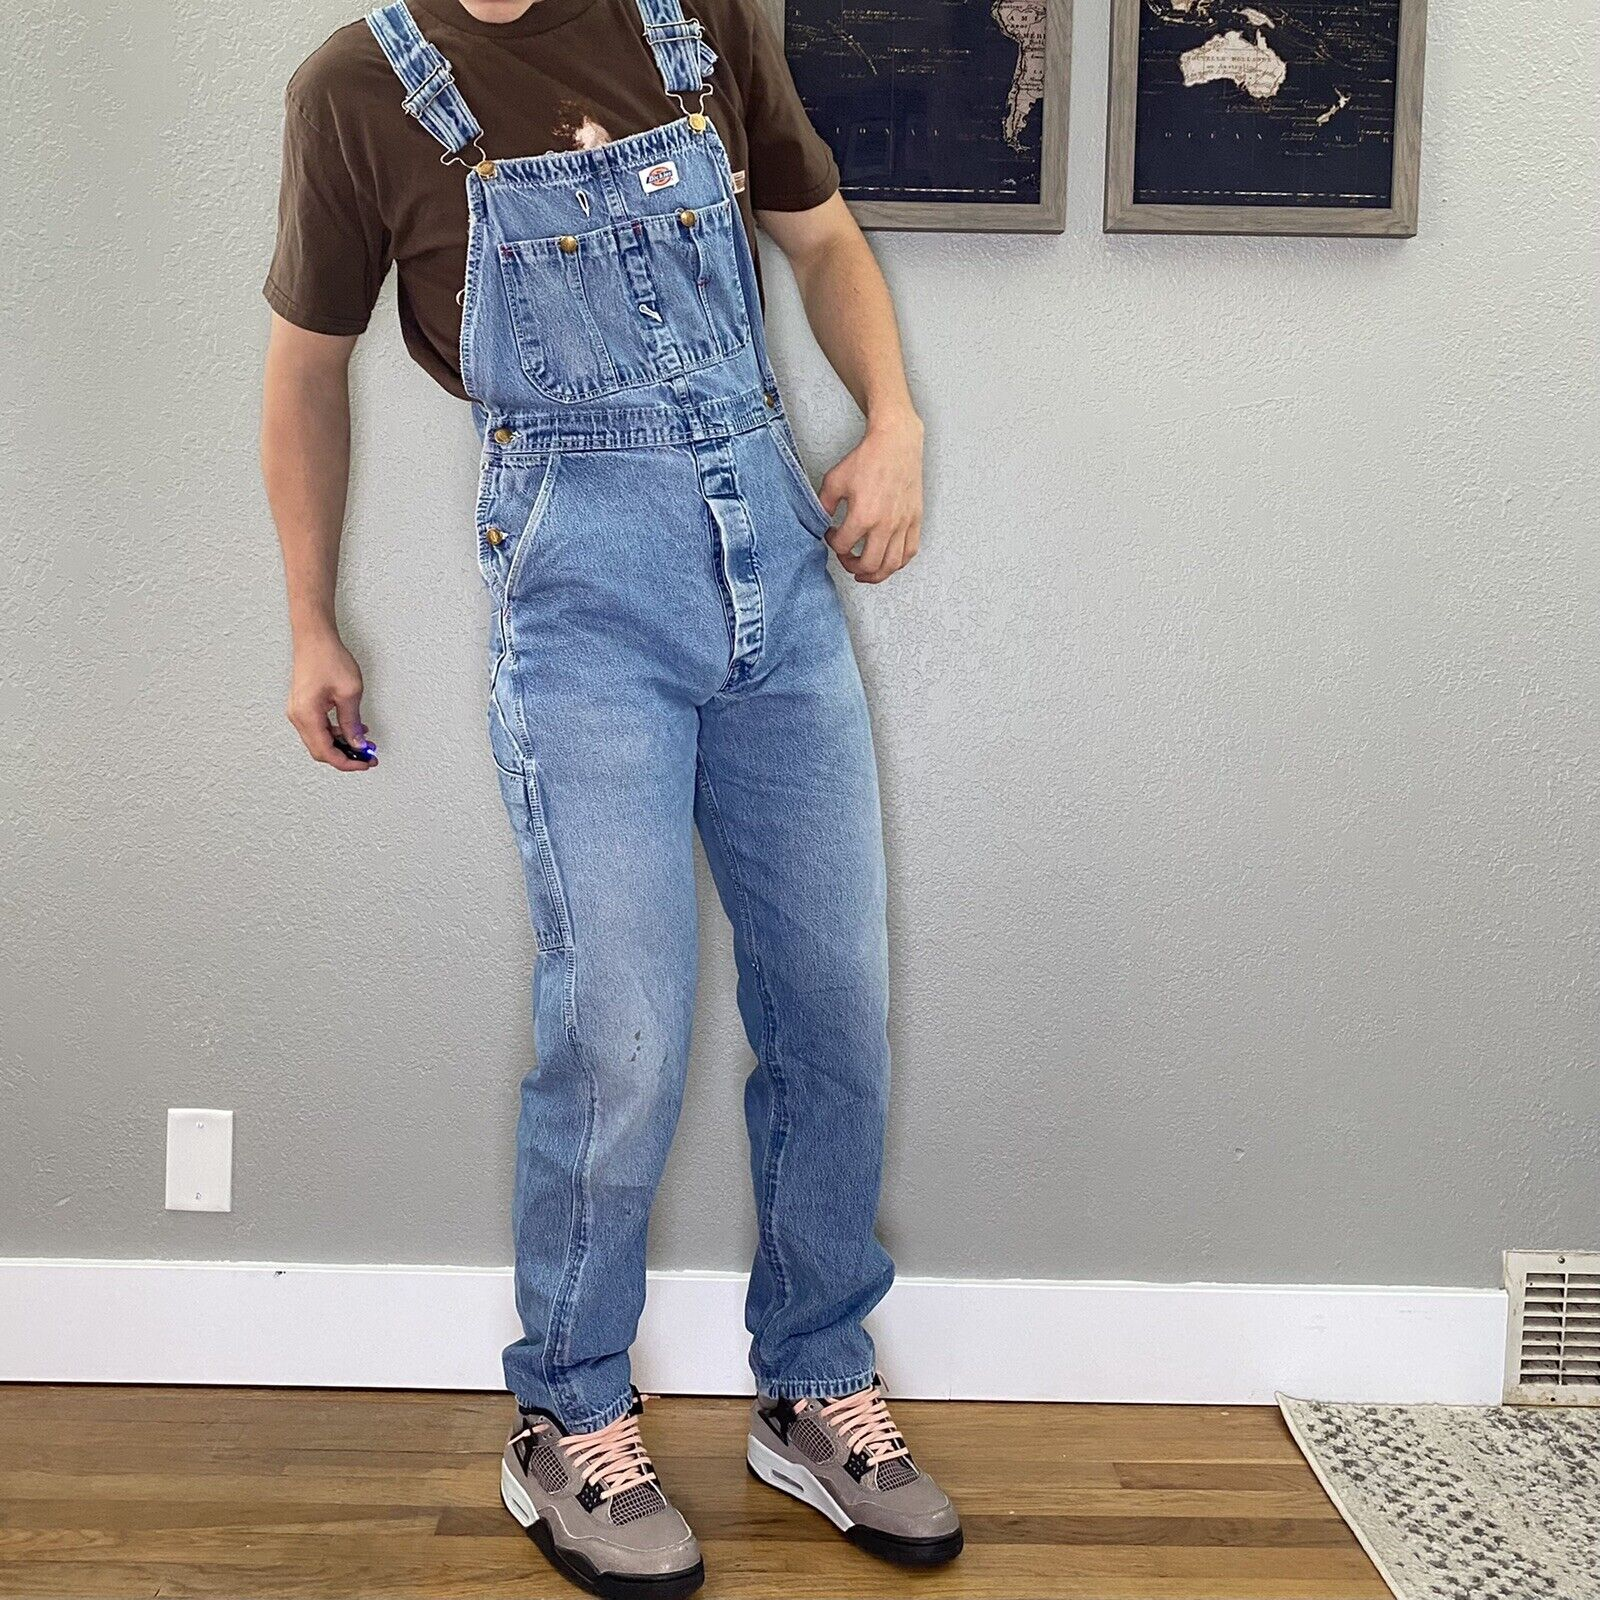 mens 34x32 light wash dickies overalls - image 1